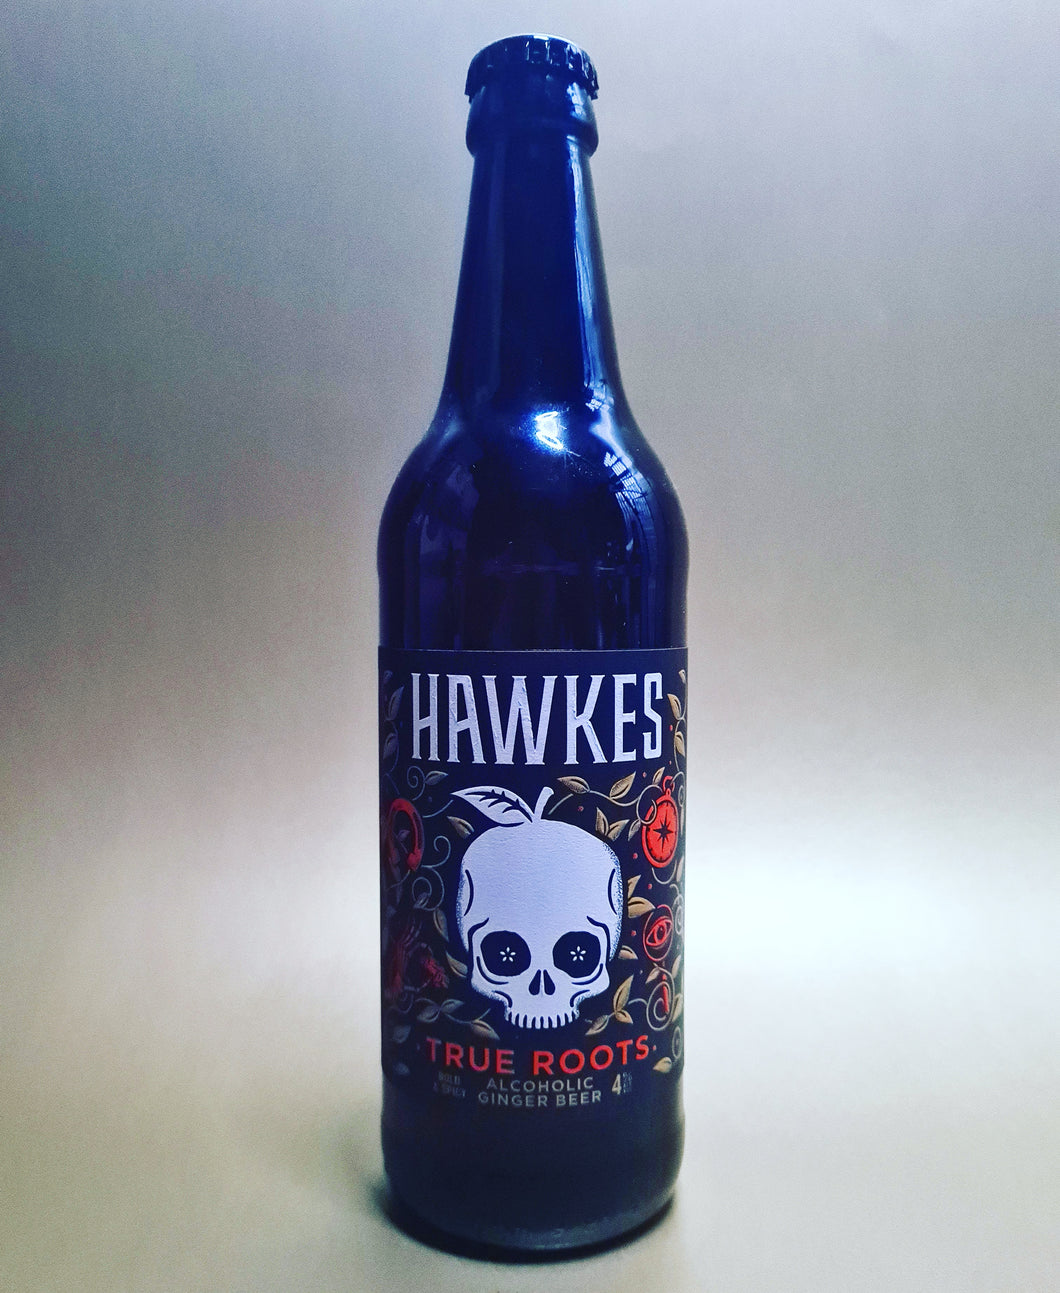 Hawkes - True Roots - Alcoholic Ginger Beer